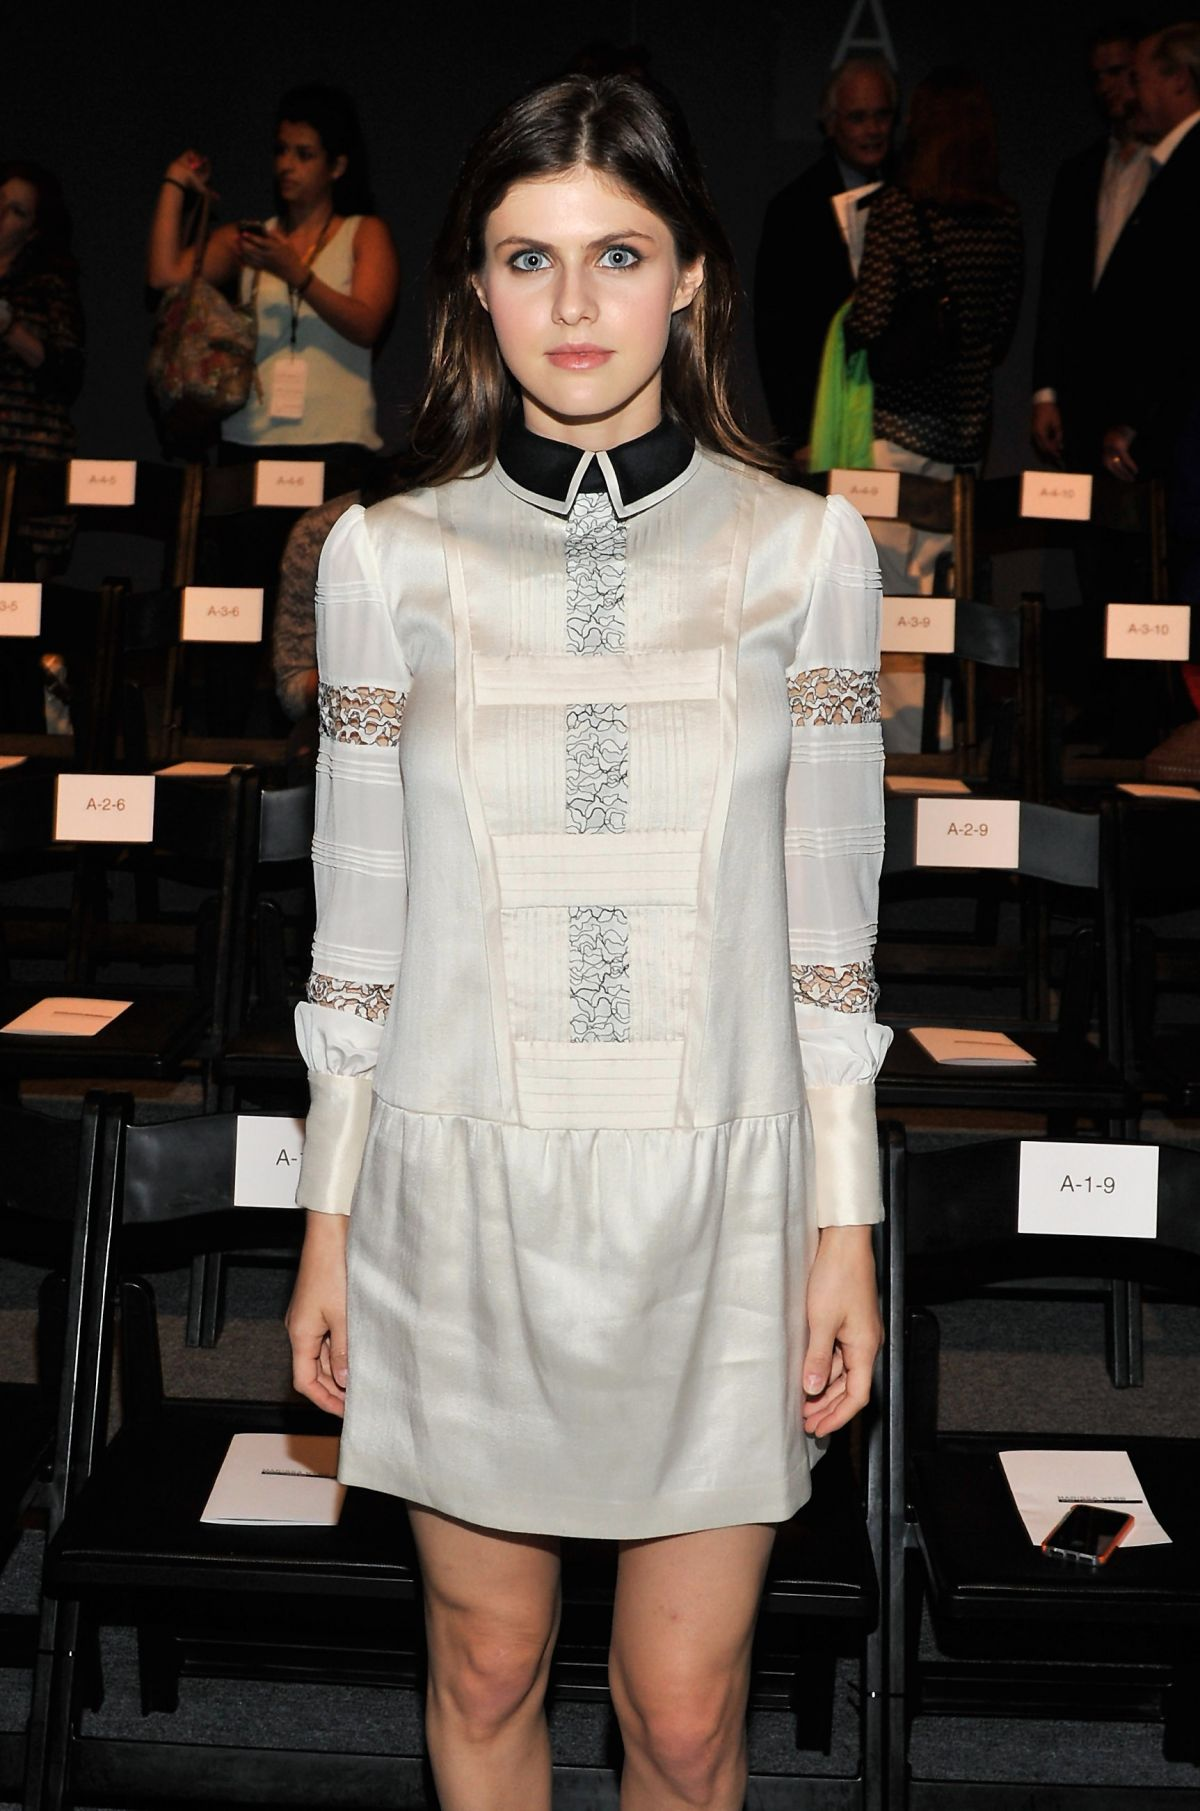 ALEXANDRA DADDARIO at Marissa Webb Fashion Show in New York